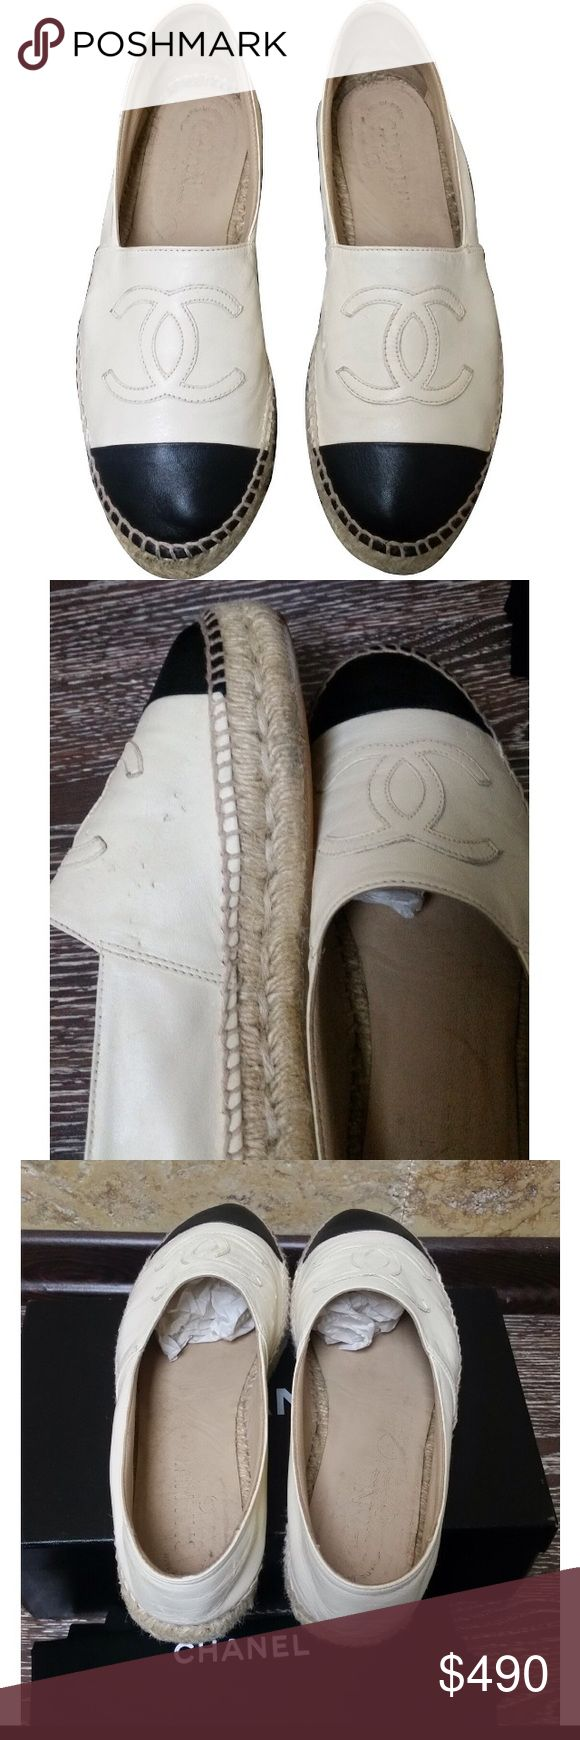 Chanel espadrilles Chanel espadrilles has very little marking from dog can't see very well leather hardly ever worn CHANEL Shoes Espadrilles